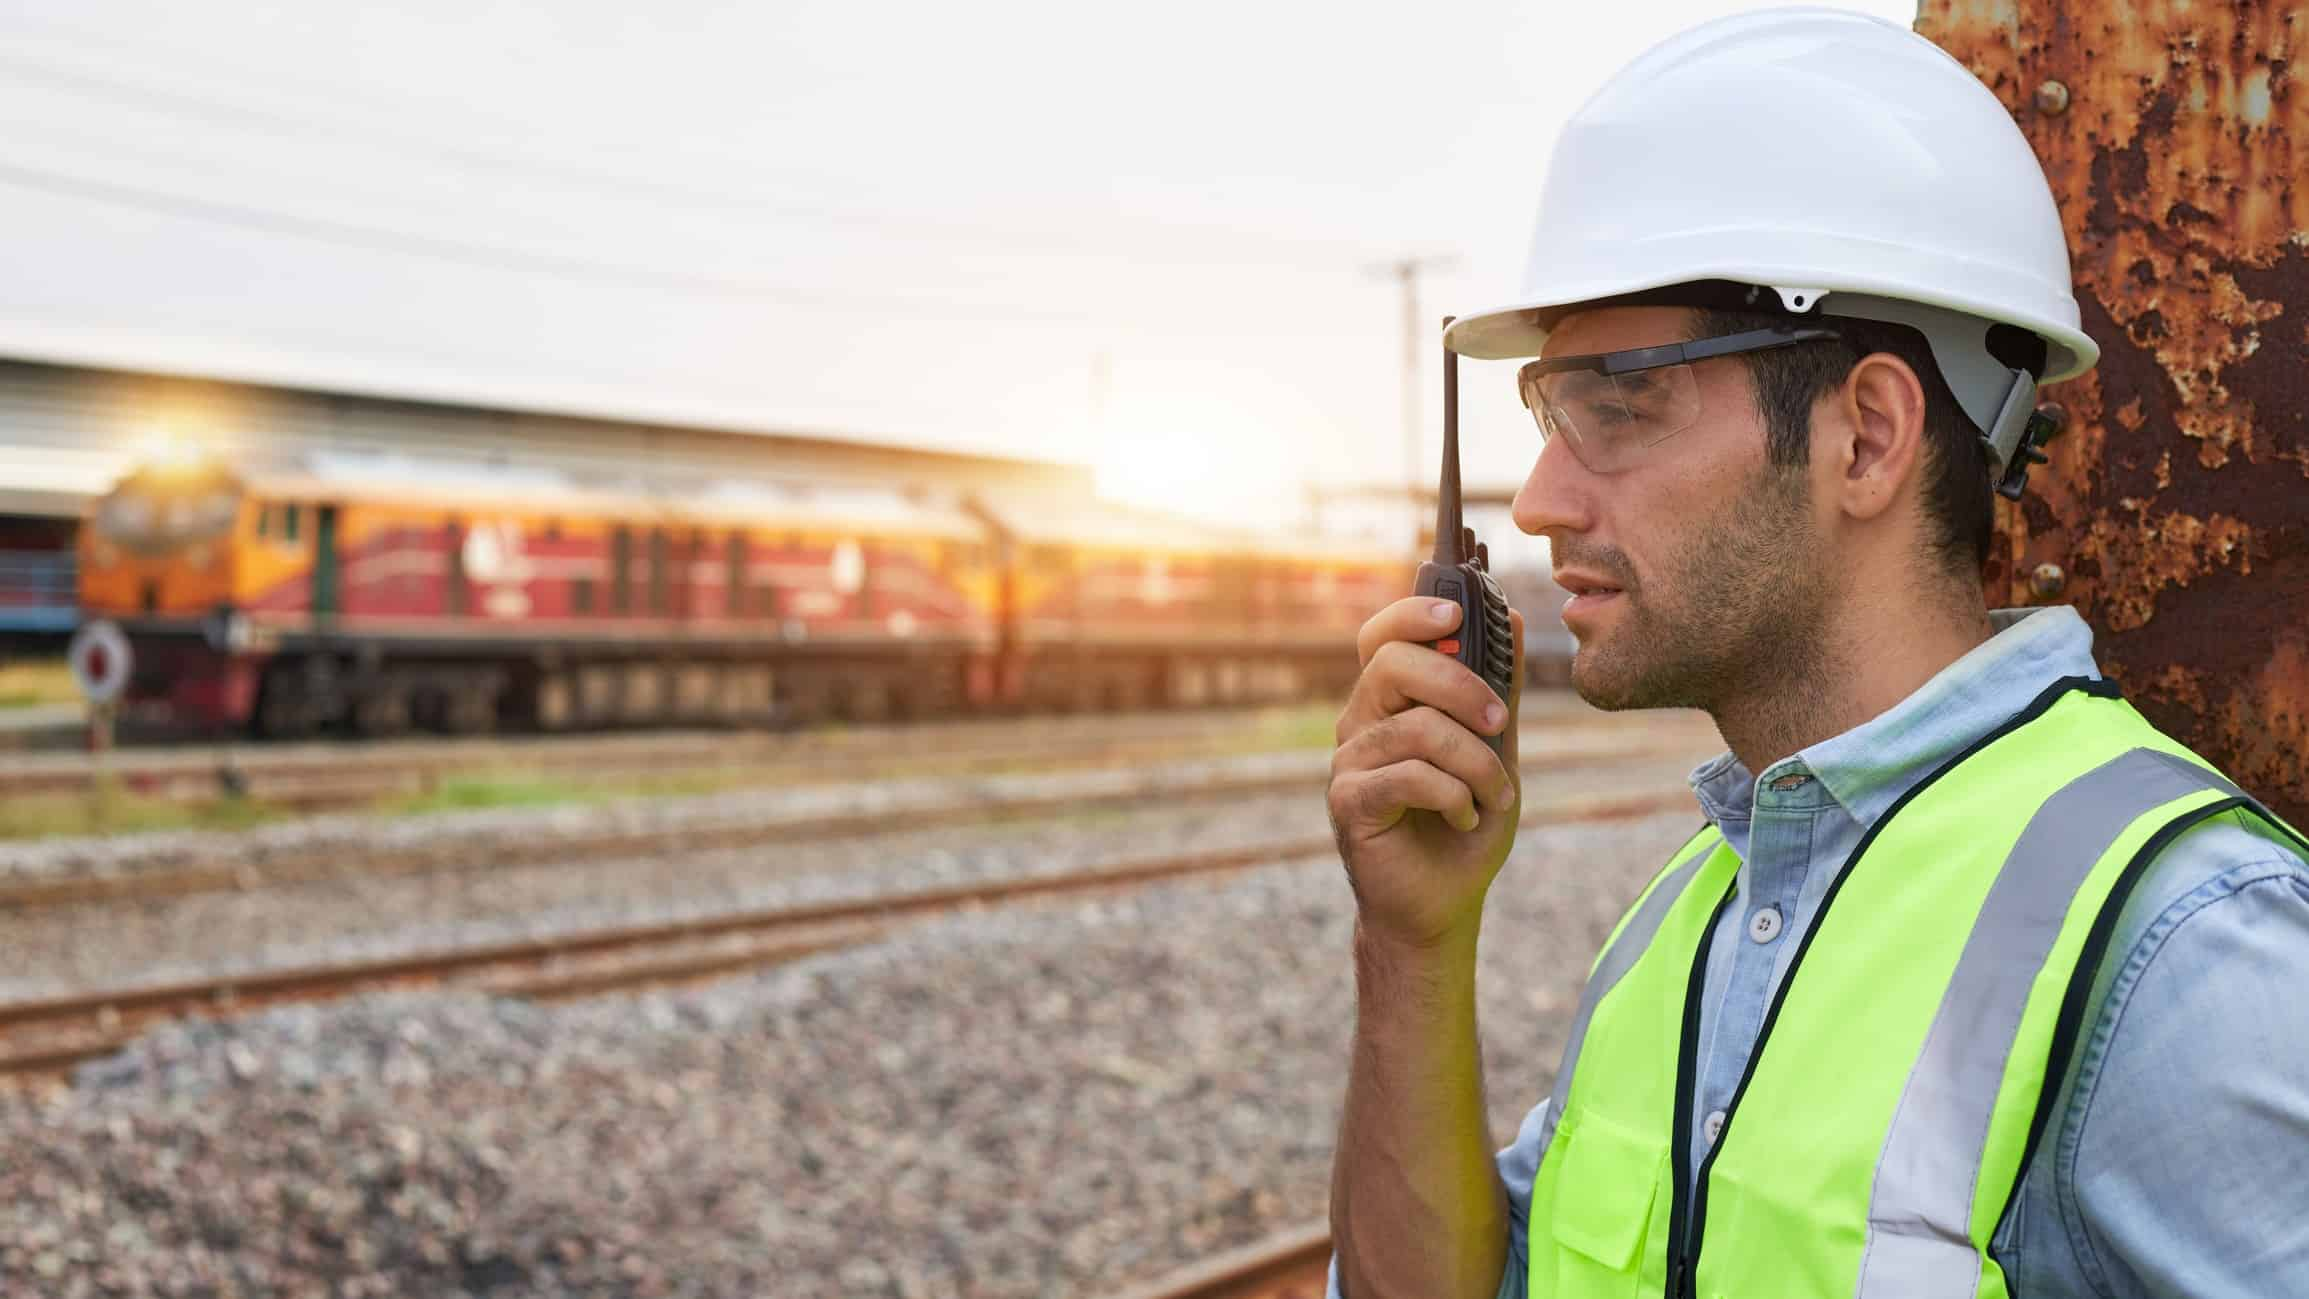 a man in hard hat and high visibility vest talks into a walky-talky device in the foreground of a freight train at a railway yard.